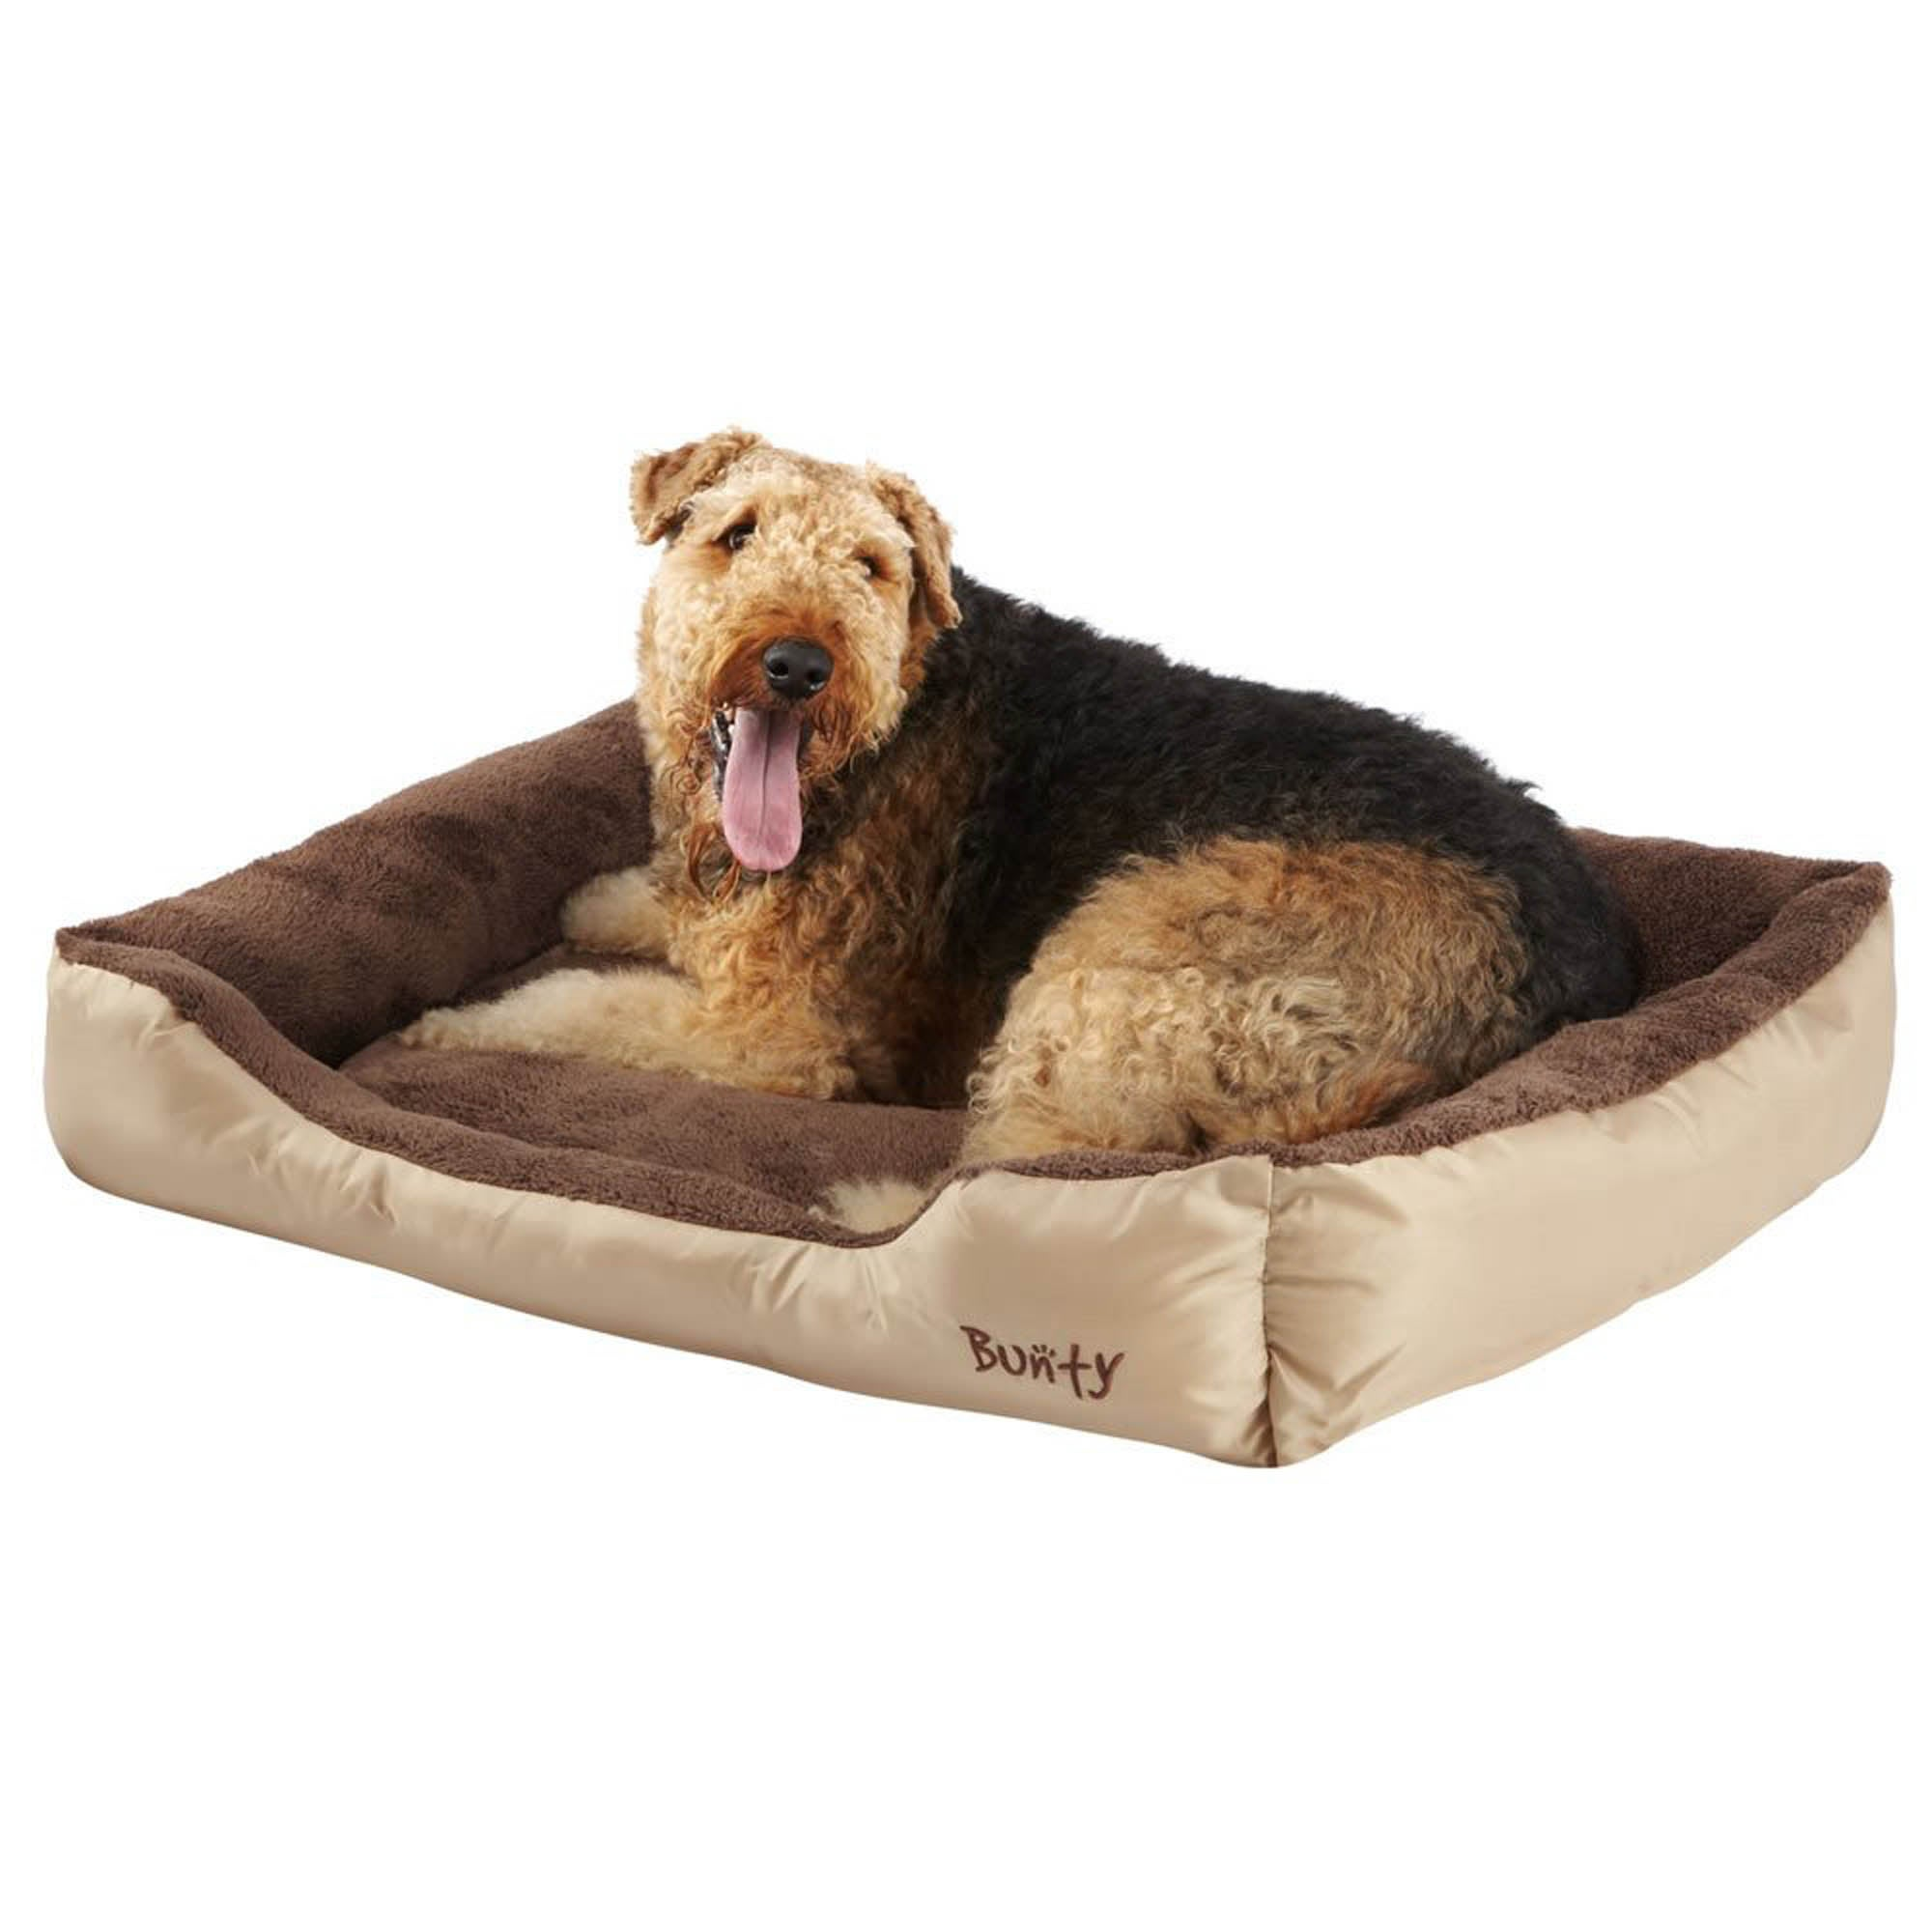 Bunty Cream Deluxe Dog Bed Natural